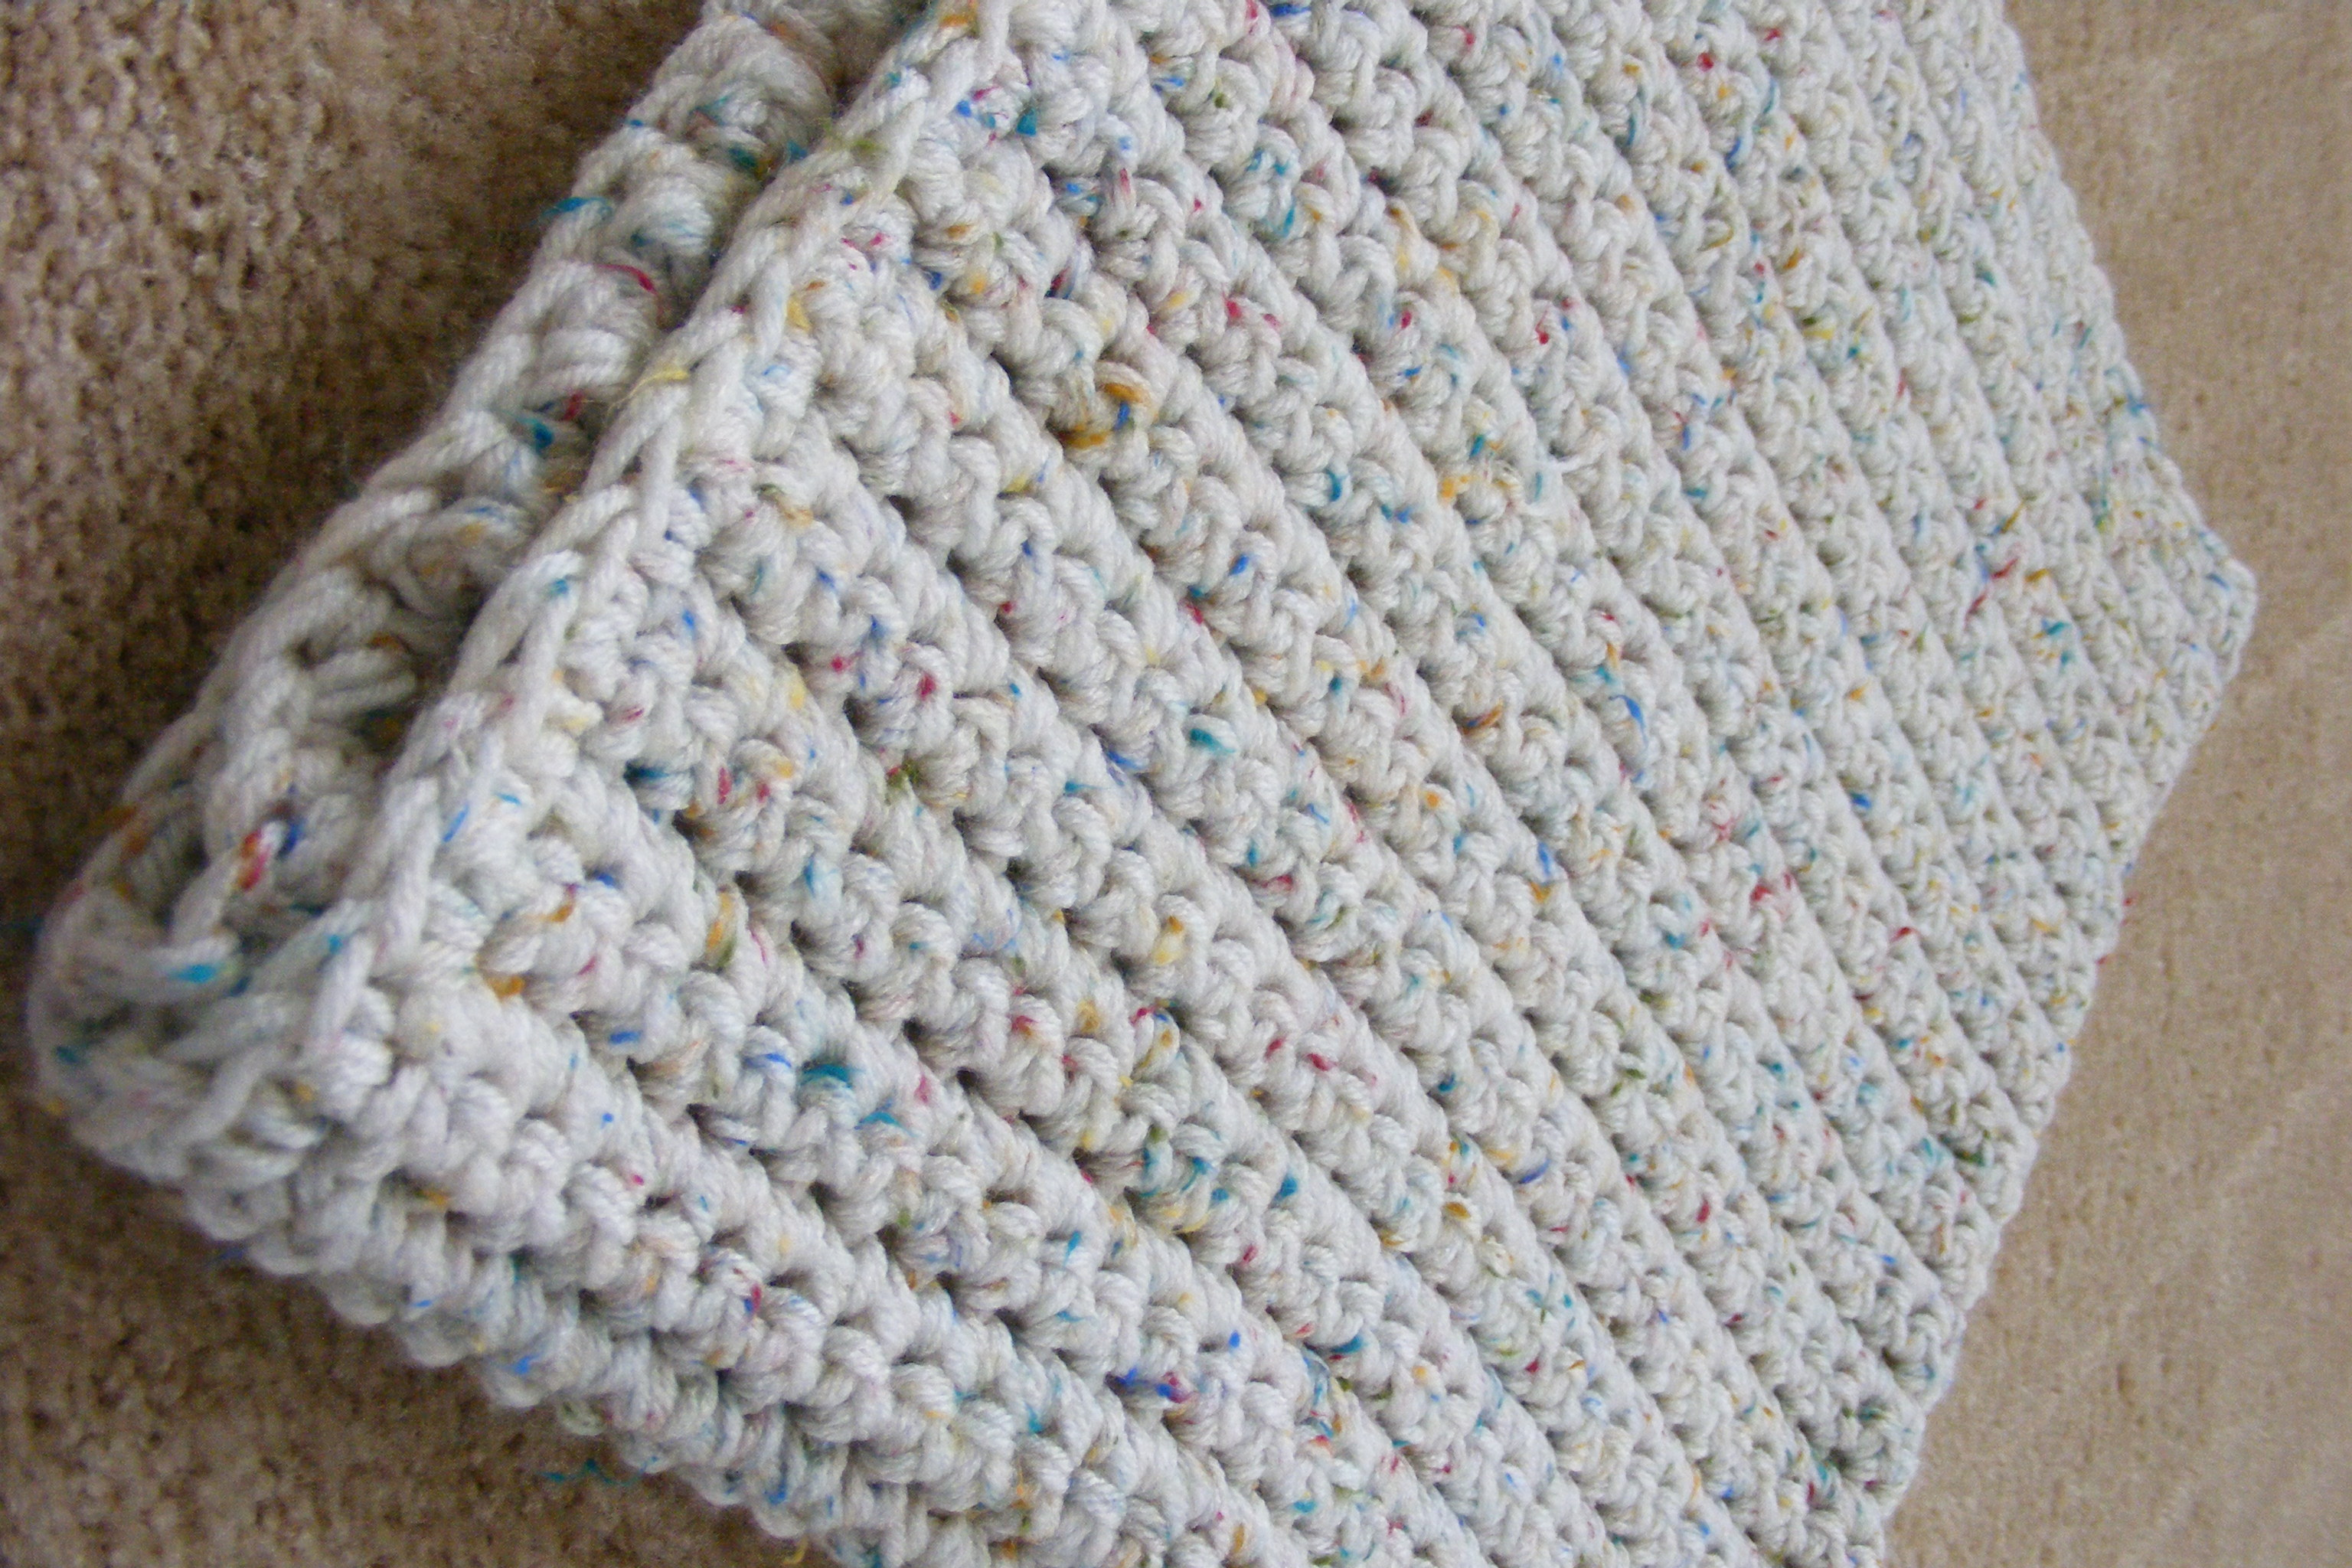 Crochet Patterns For Beginners Baby Blankets : baby blanket crochet patterns free easy crochet patterns ...